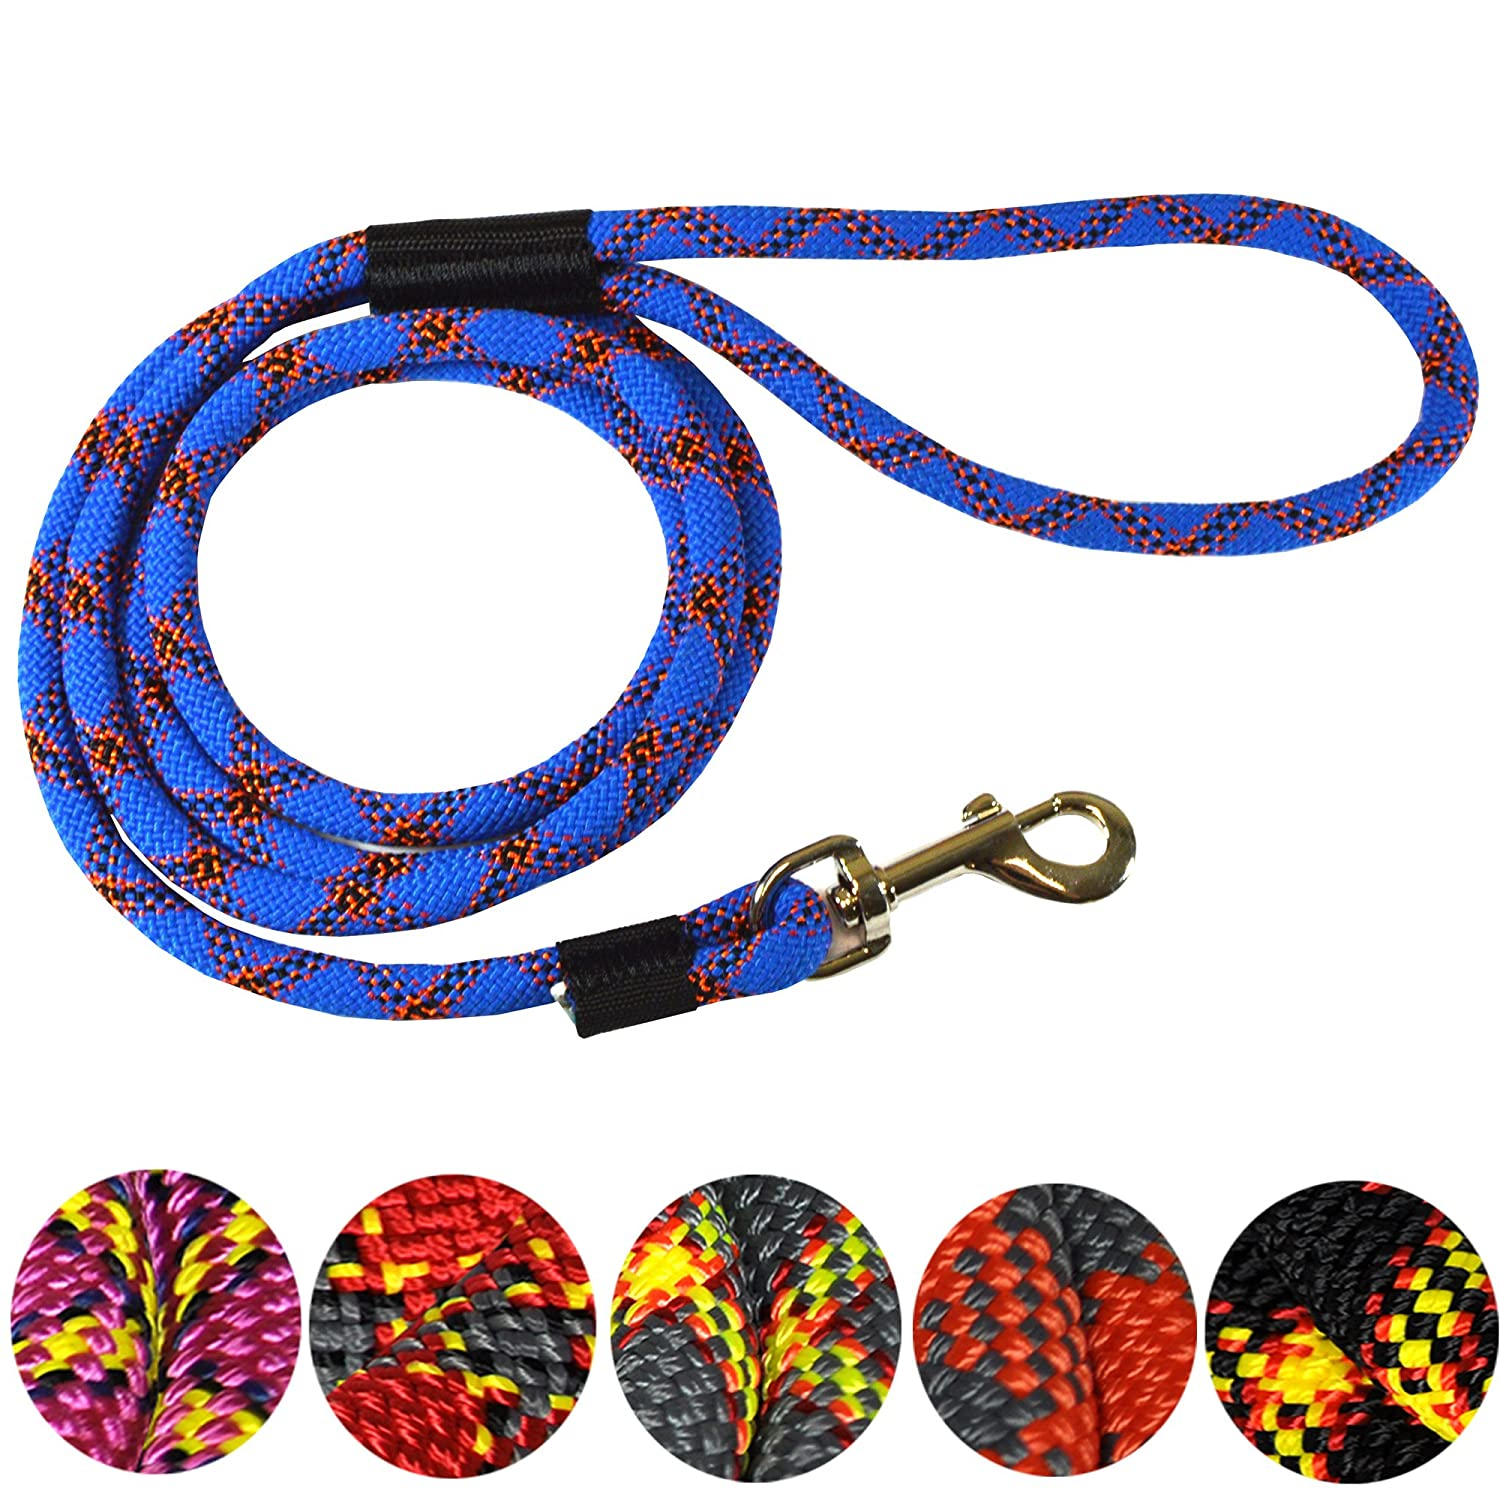 Grey Sturdy and Comfortable Leash Premium Quality Mountain Climbing Dog Rope Lead Supports the Strongest Pulling Large and Medium Sized Dogs Strong Extremely Durable Dog Rope Leash 6-feet